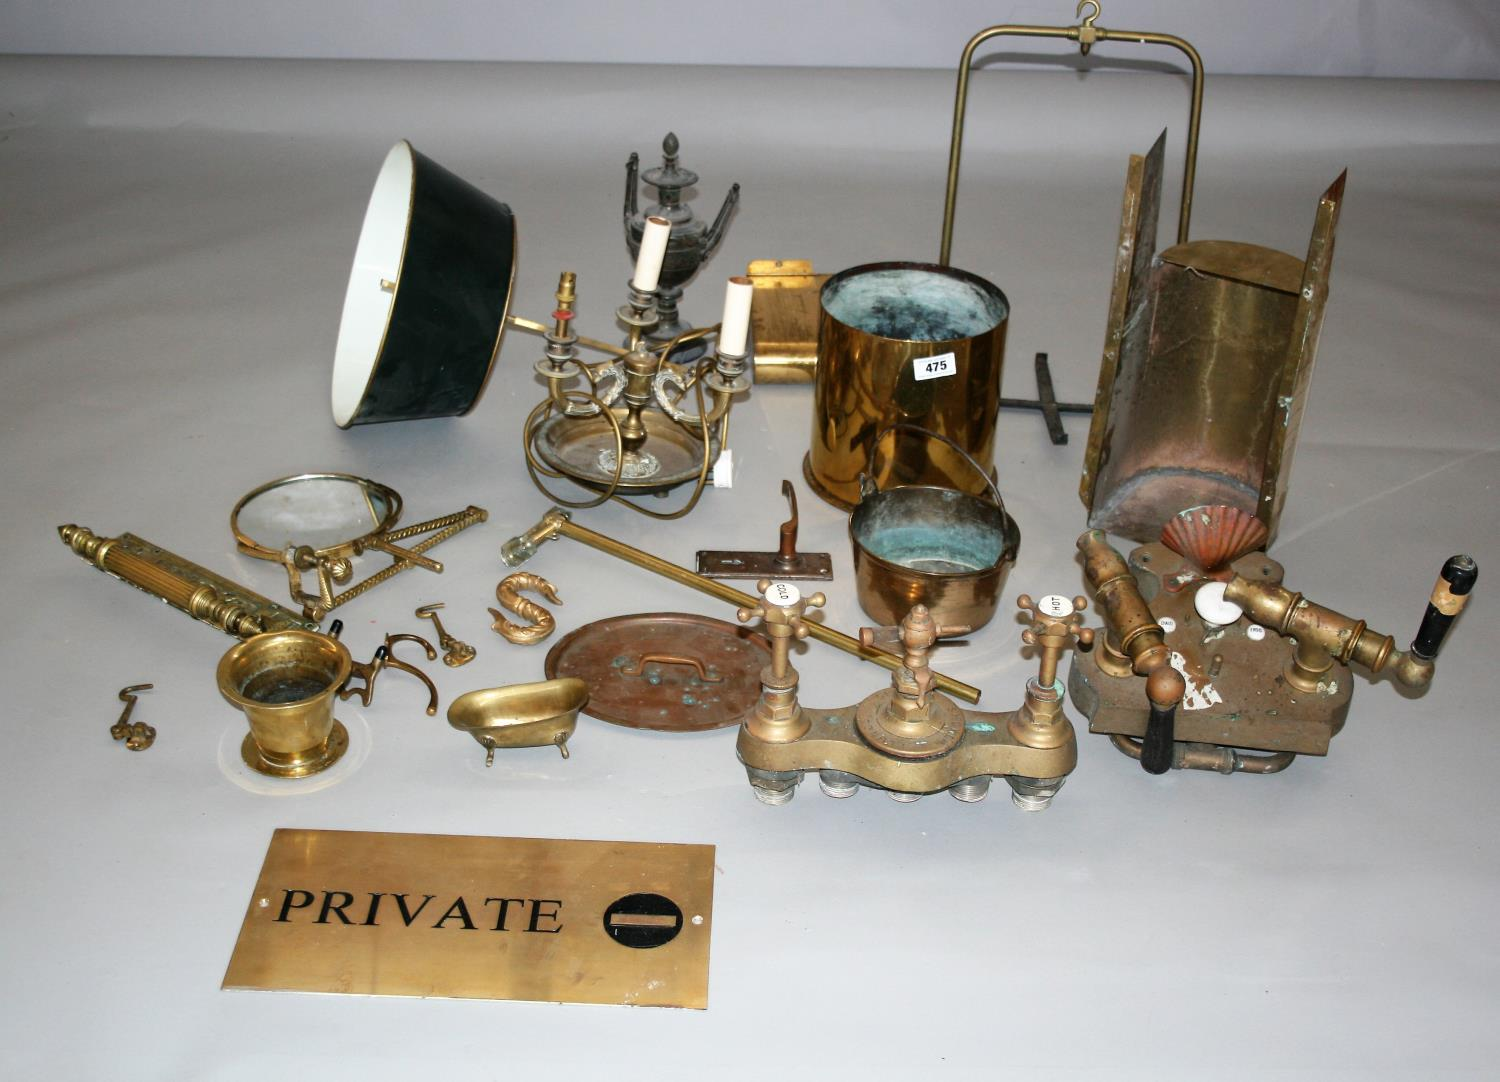 Collection of quality antique brass items, lamp, private sign etc